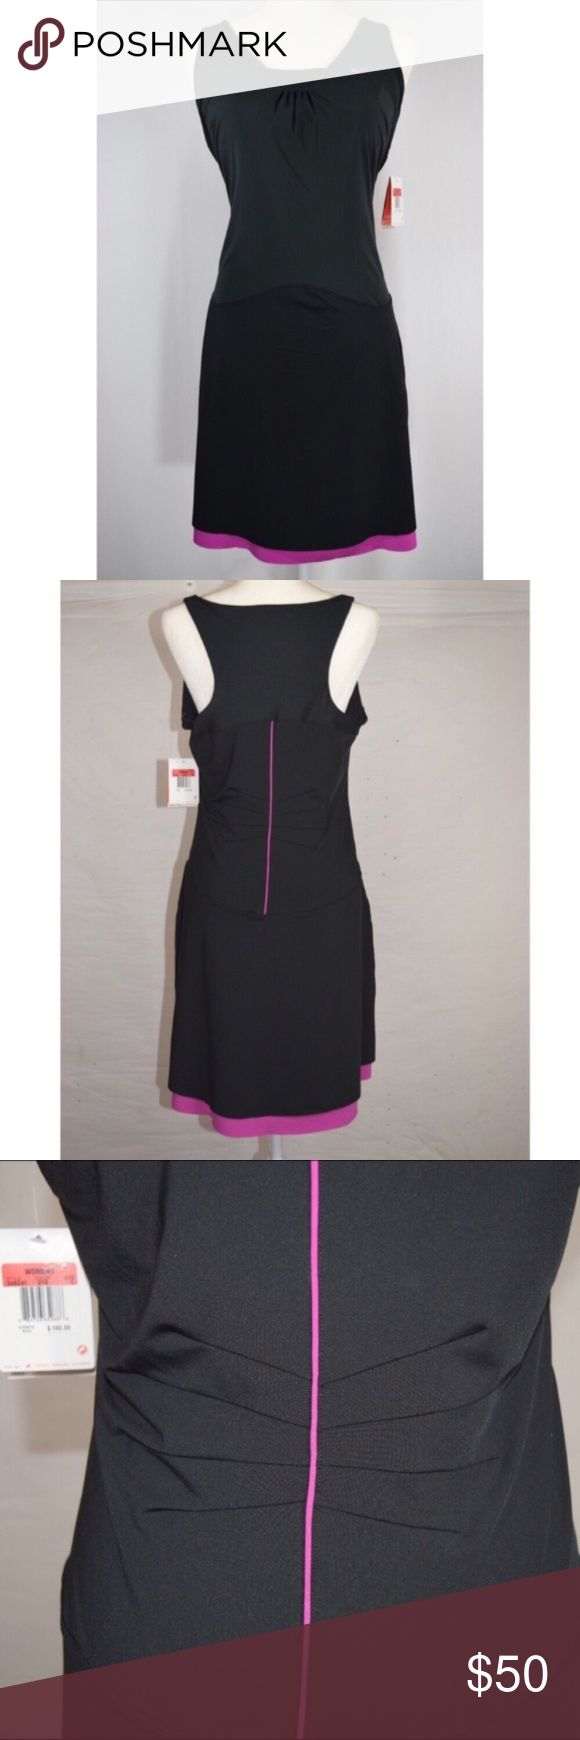 """NWT Nike Serena Williams Dri Fit Tennis Dress Nike tennis dress🔹Dri-Fit material🔹Sphere React Cool🔹Size large🔹Black and pink🔹Brand new🔹Serena Williams🔹Built in bra🔹Body is 86% polyester and 14% spandex🔹Dress measures approx 37.75"""" from top of shoulder to bottom hem🔹Smoke and pet free home Nike Dresses"""